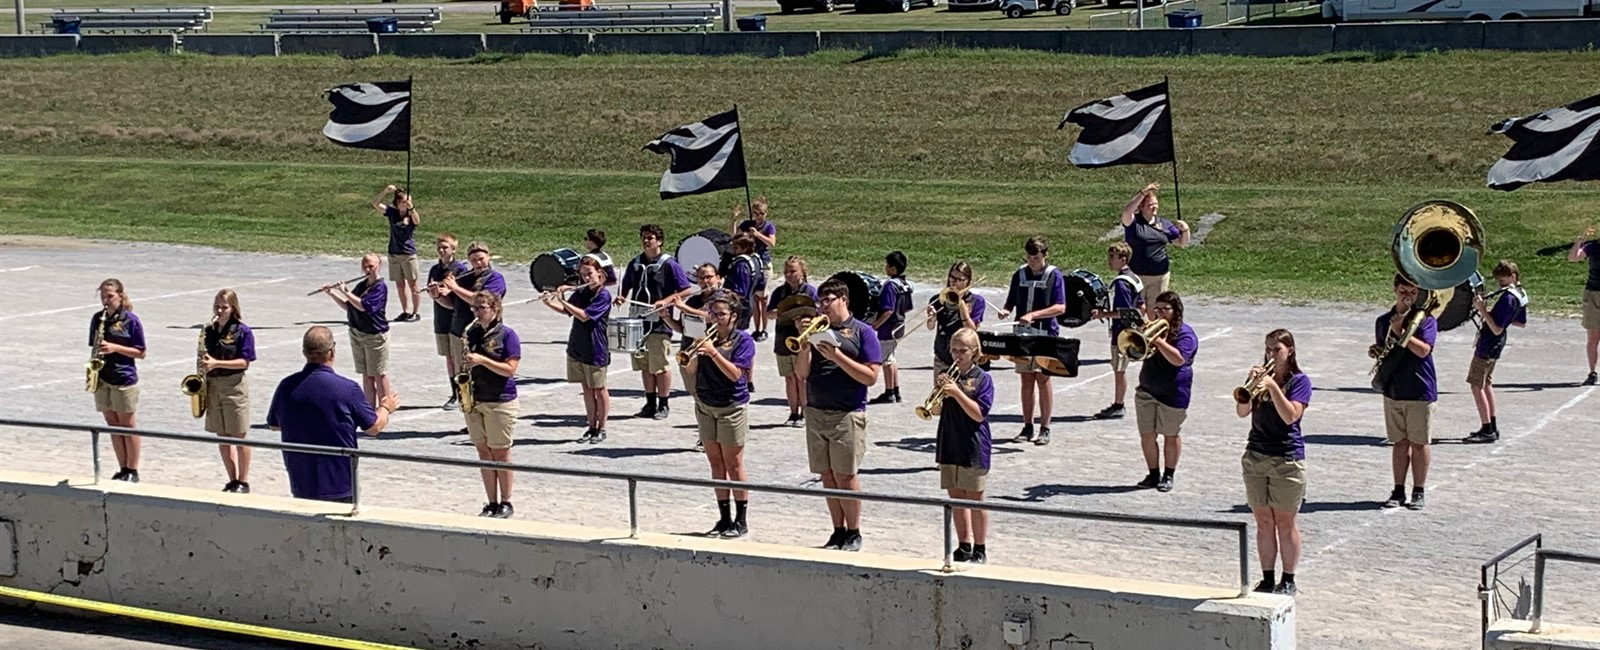 The high school marching band had an awesome performance at the Canfield Fair this year!